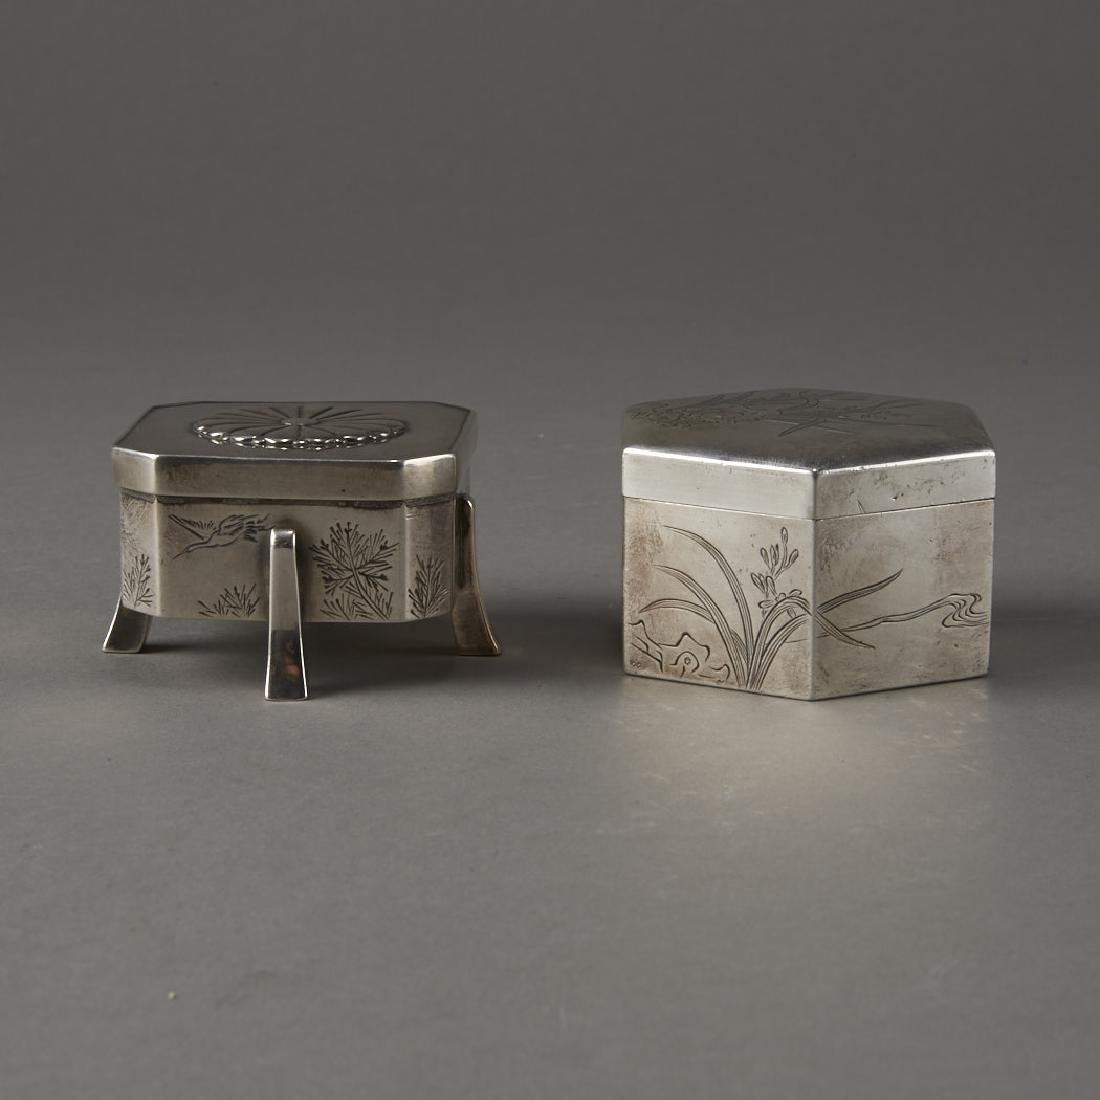 Japanese 20th C. Silver Boxes Decoration - 2